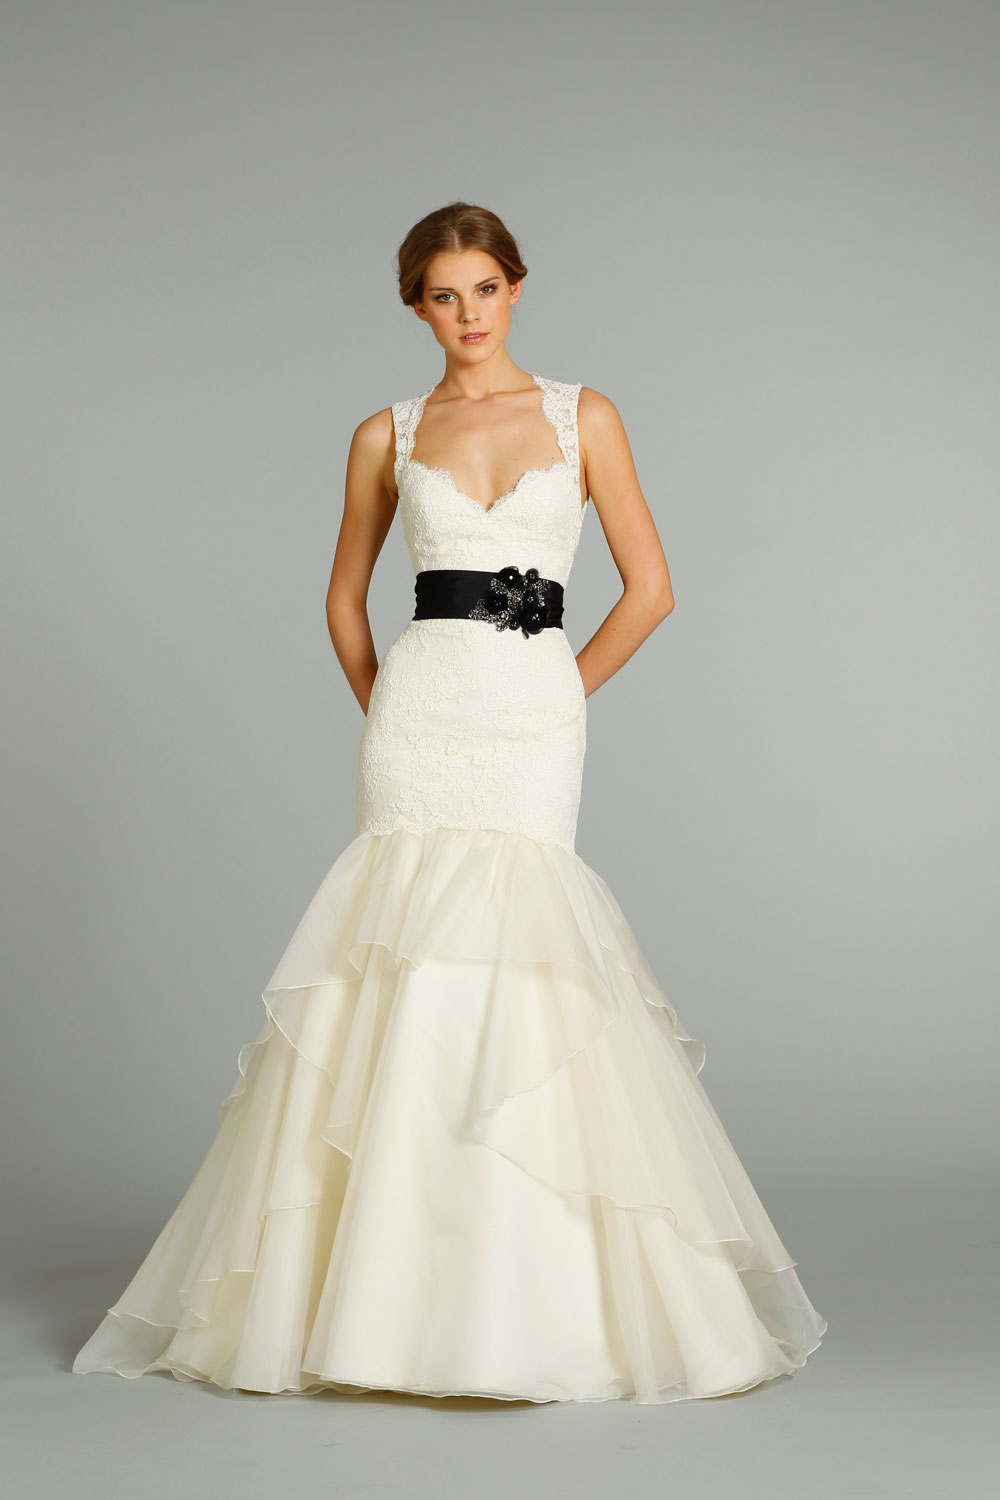 Fall-2012-wedding-dress-jim-hjelm-bridal-gowns-8262.original